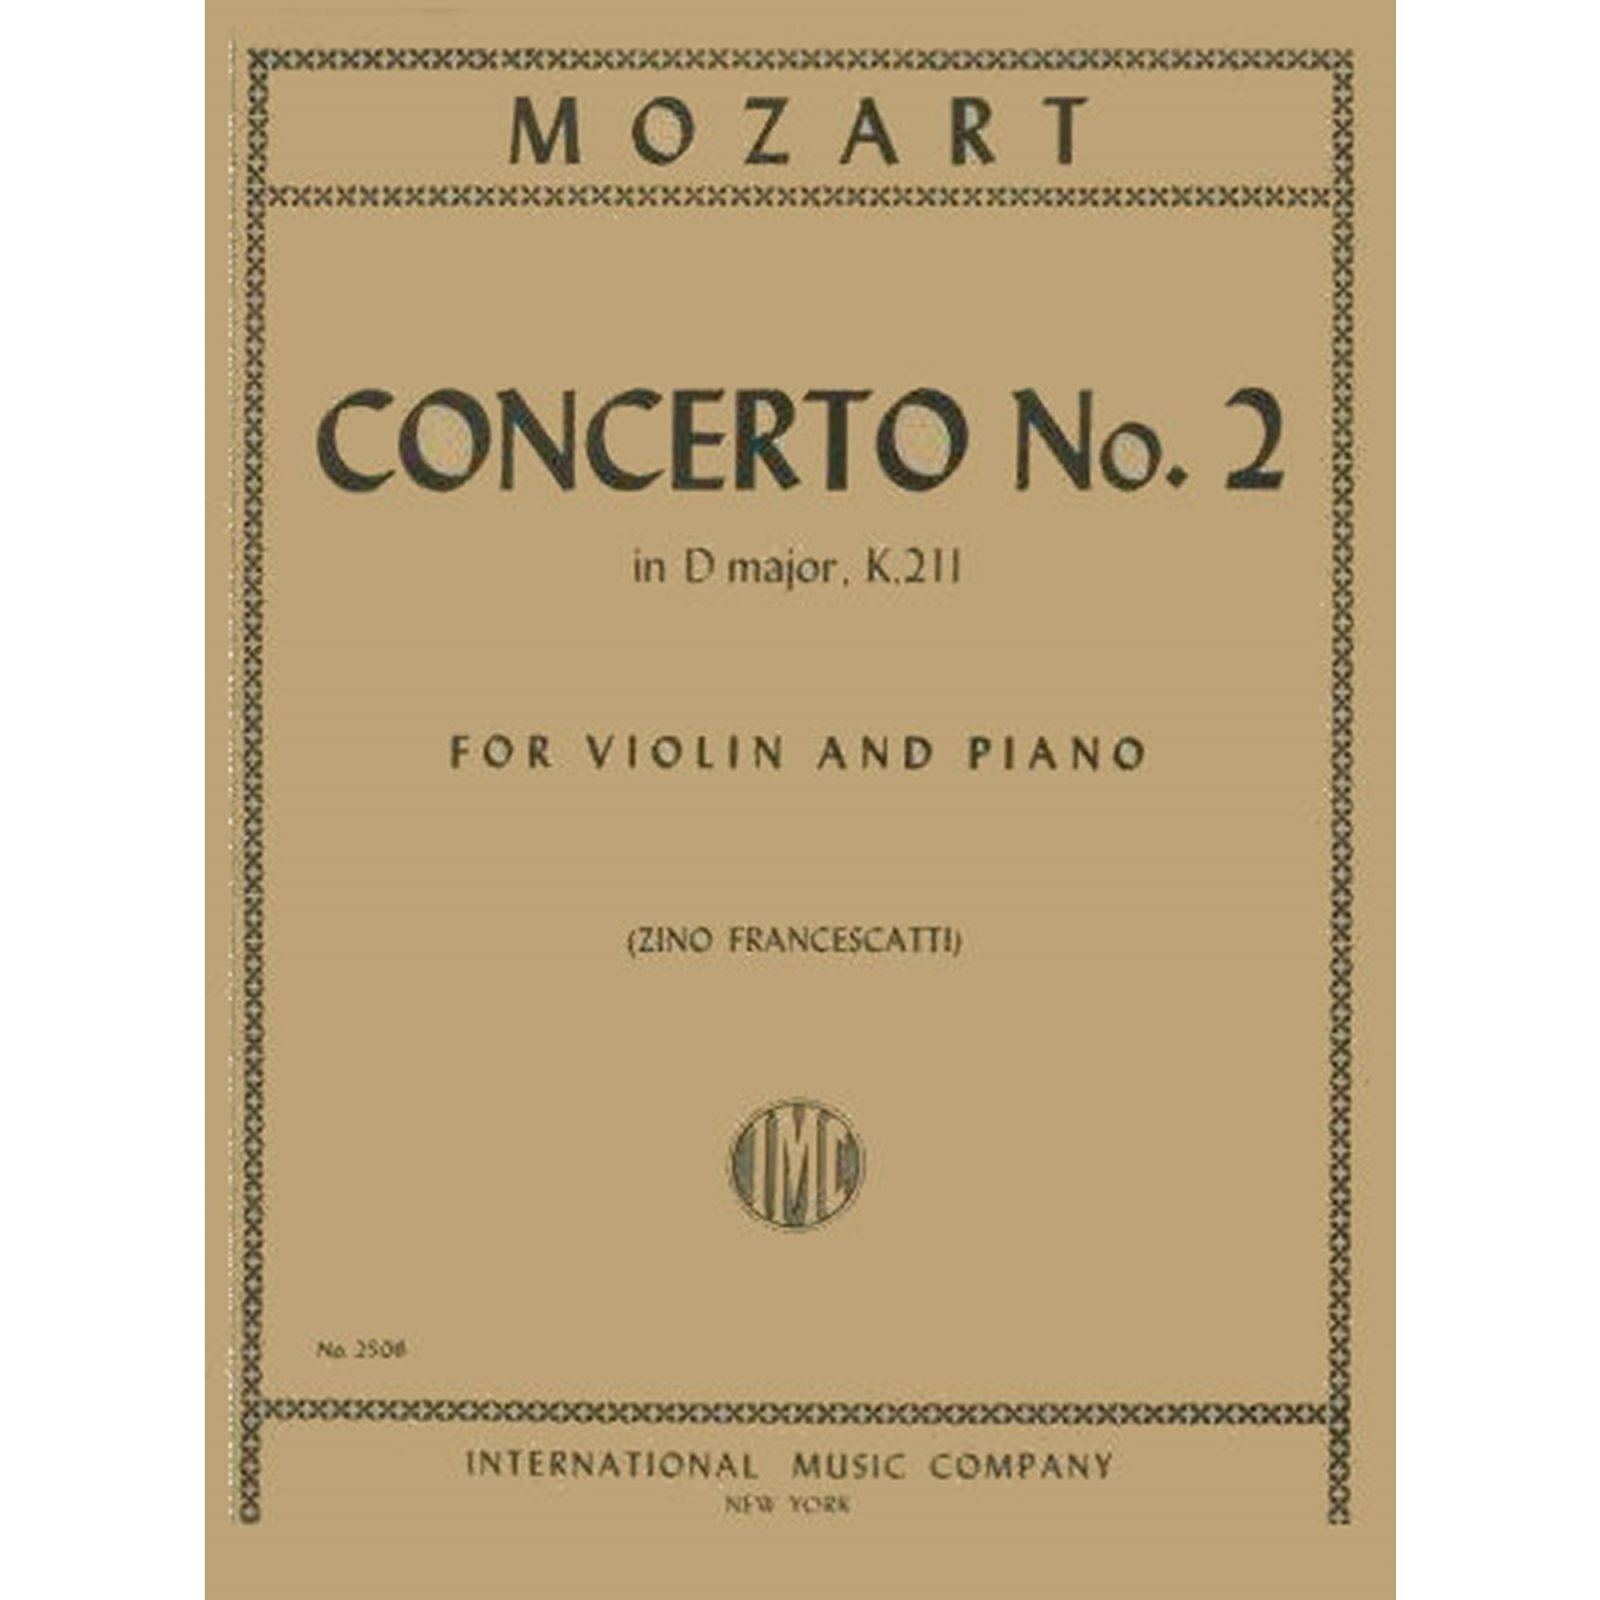 Mozart: Concerto No. 2 In D Major K. 211 Ed. Francescatti